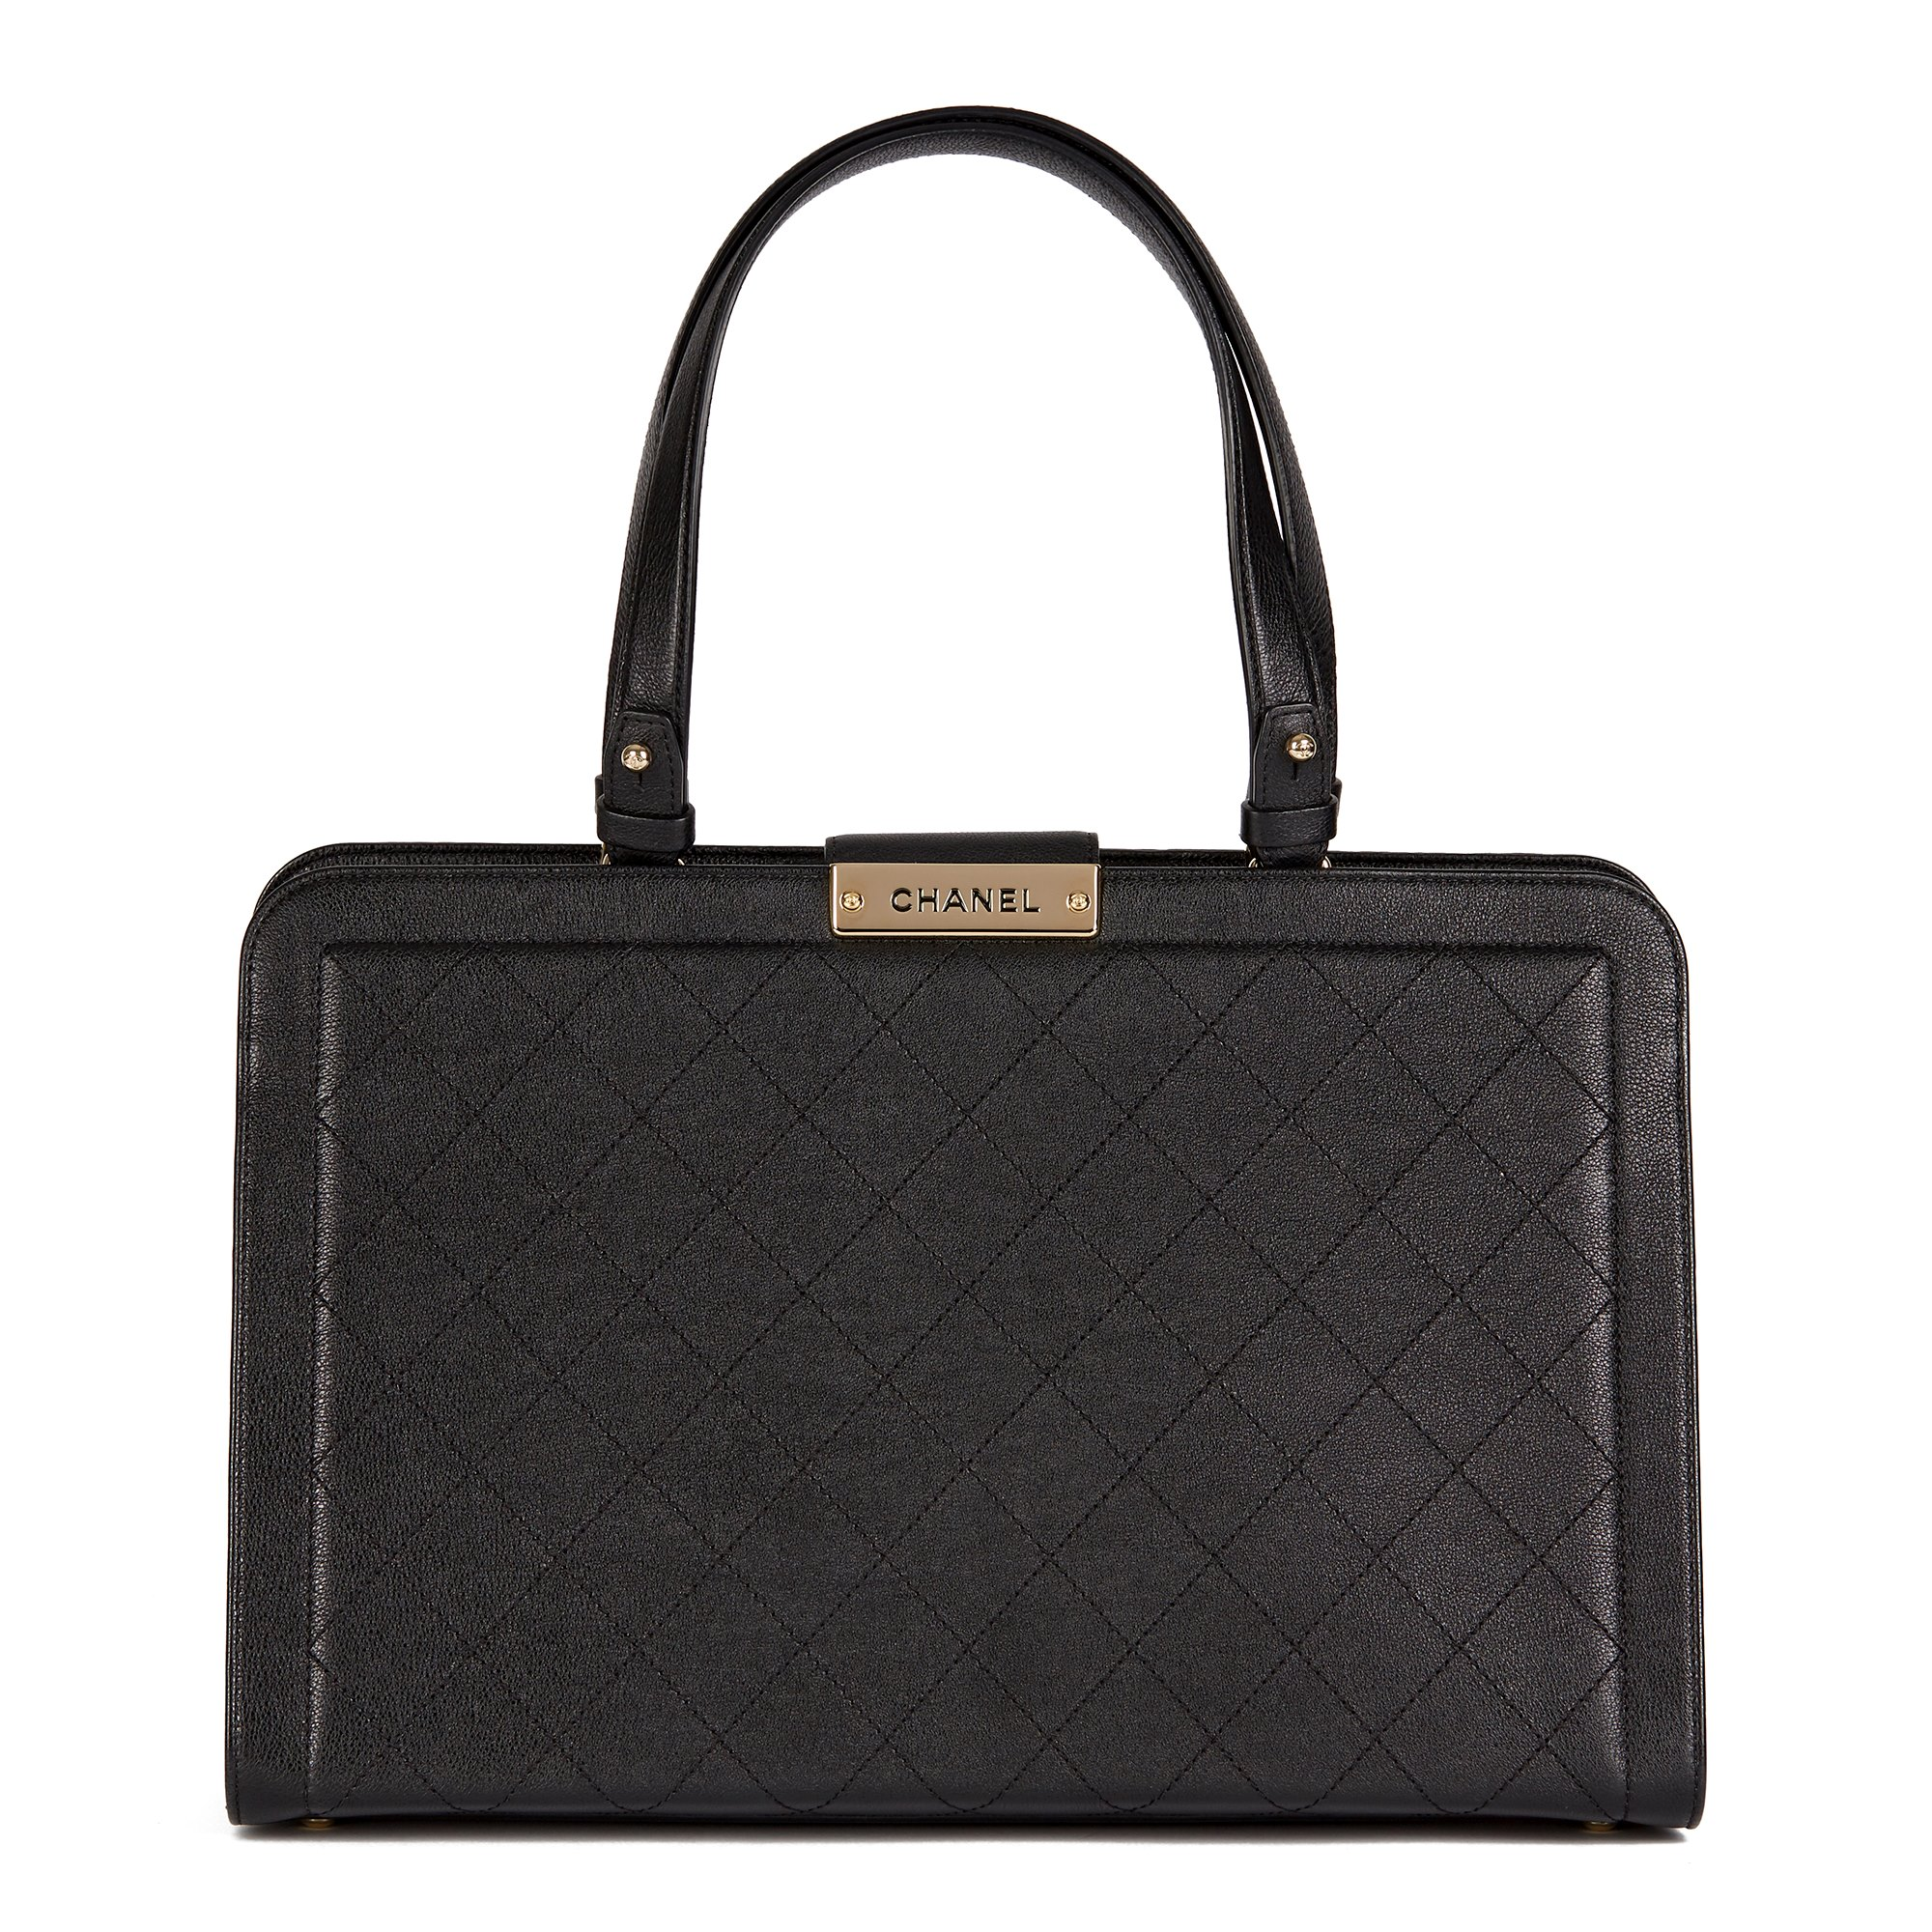 Chanel Black Quilted Calfskin Leather Large Label Click Shopping Tote